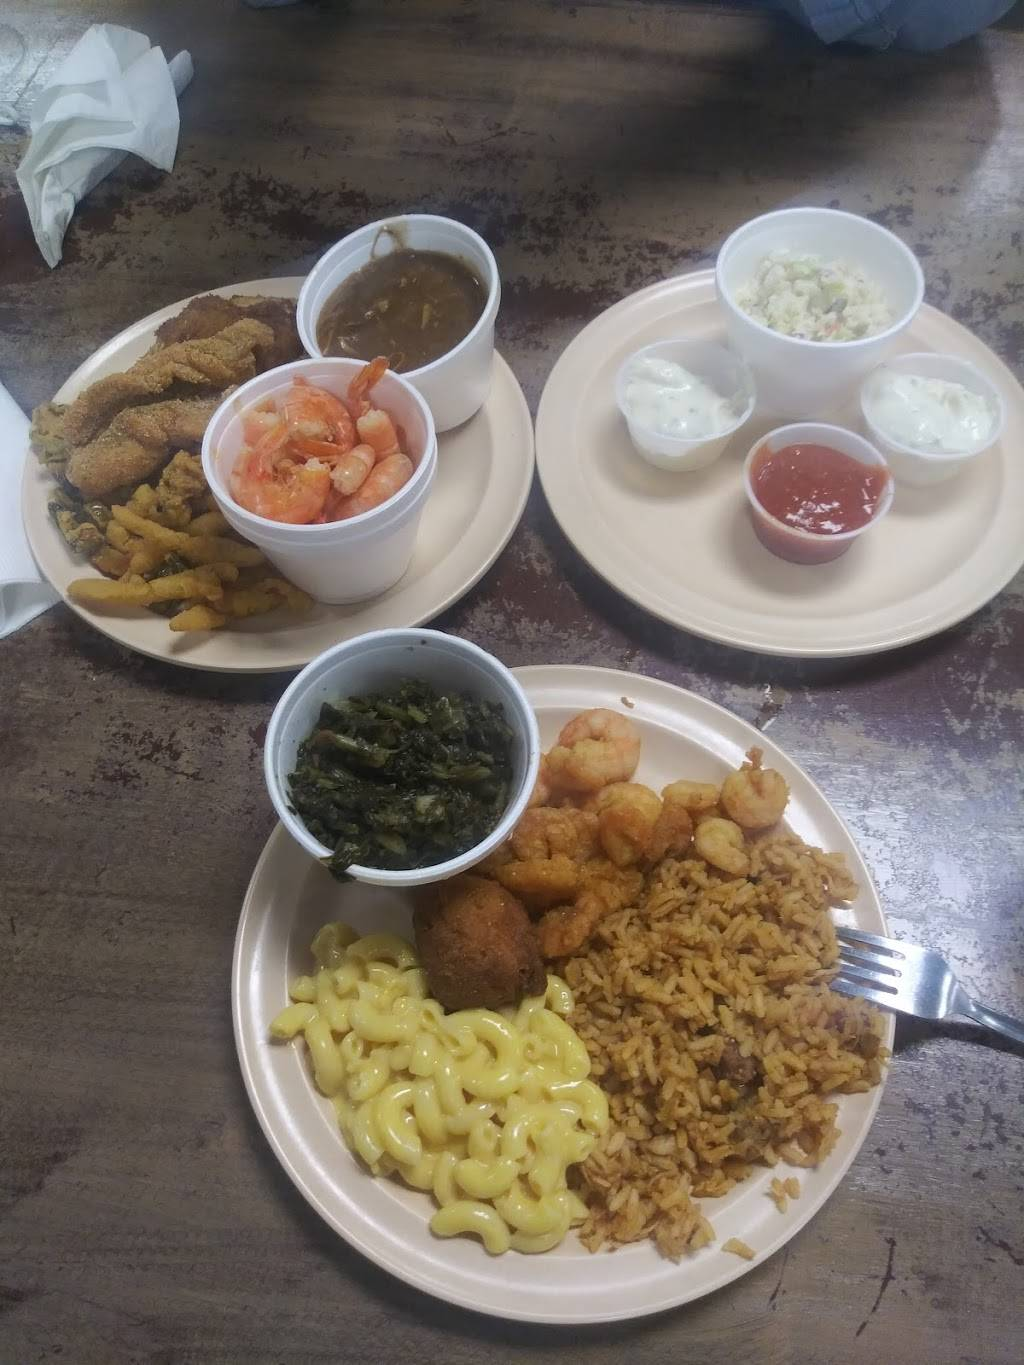 Stonehouse Restaurant | restaurant | 176 Shelby Speights Dr Suit 2, Purvis, MS 39475, USA | 6017941982 OR +1 601-794-1982